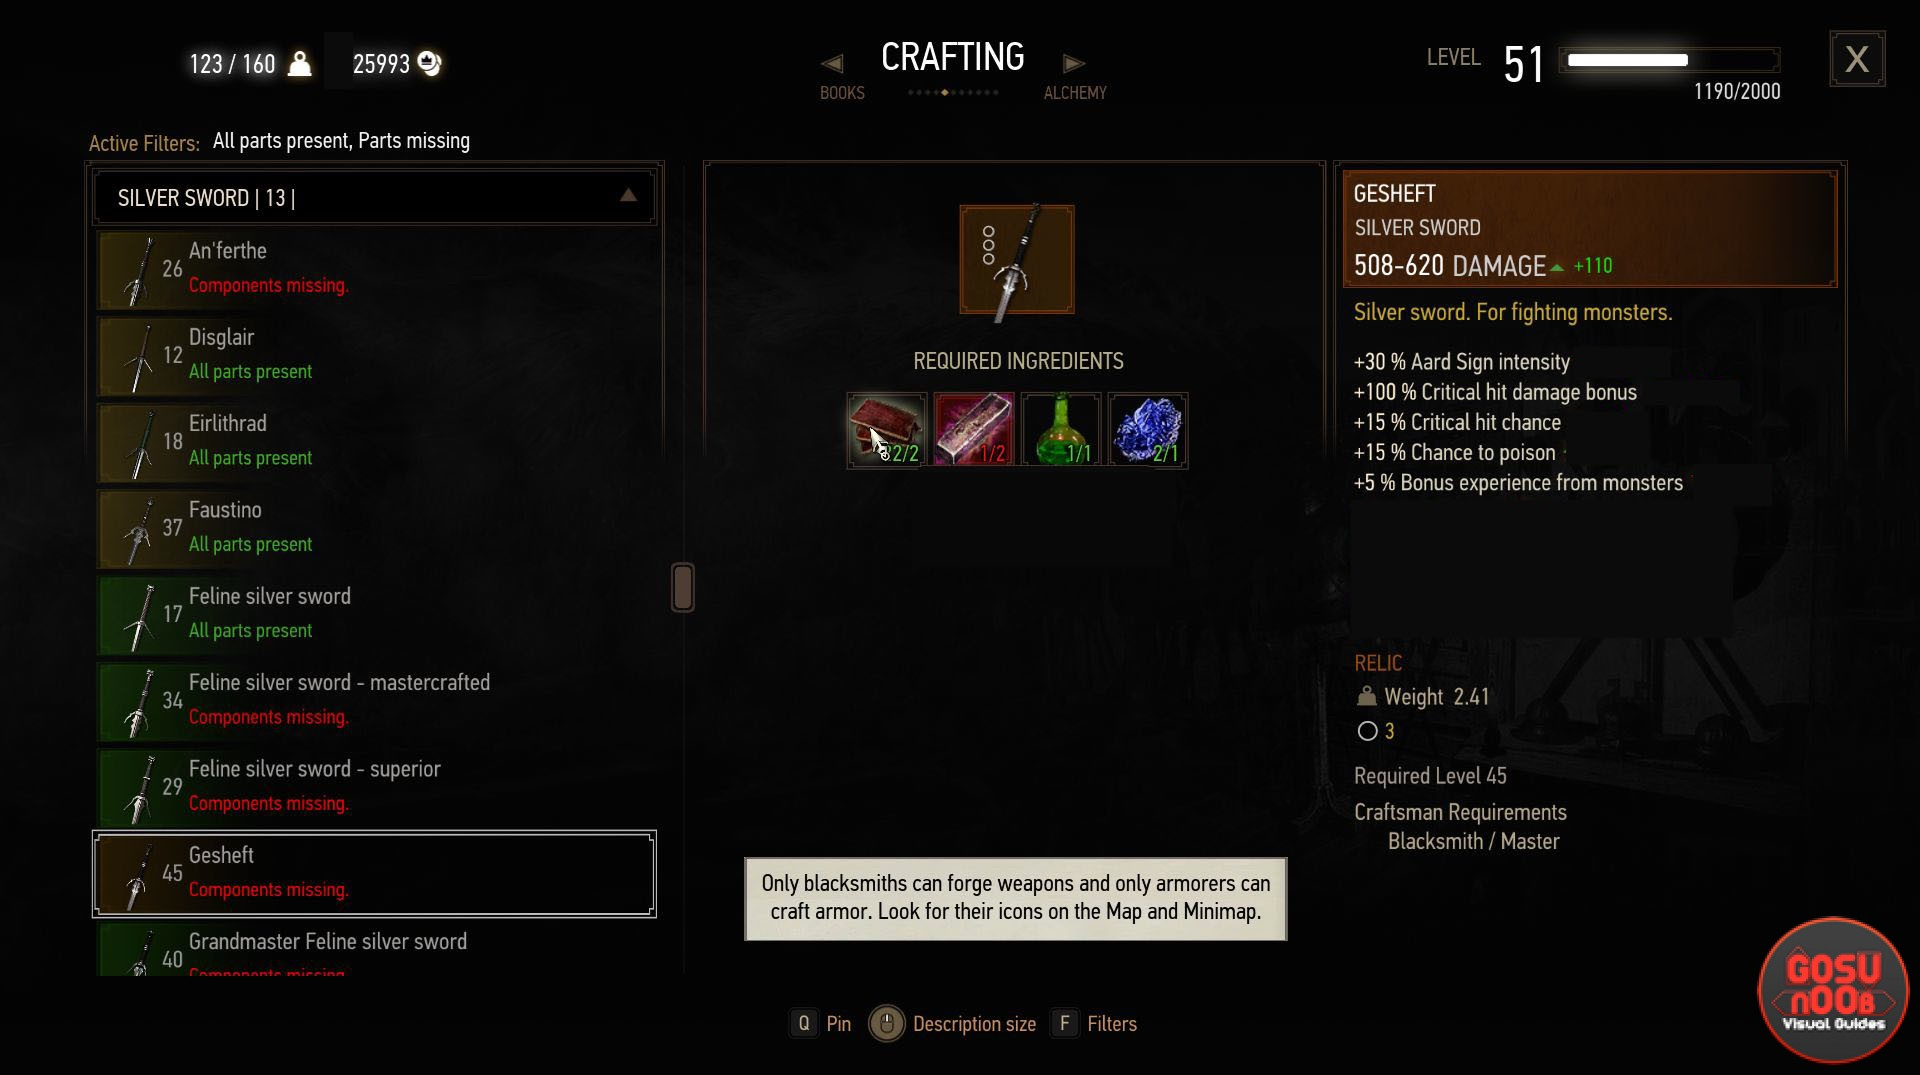 Gesheft silver sword witcher 3 blood and wine solutioingenieria Image collections